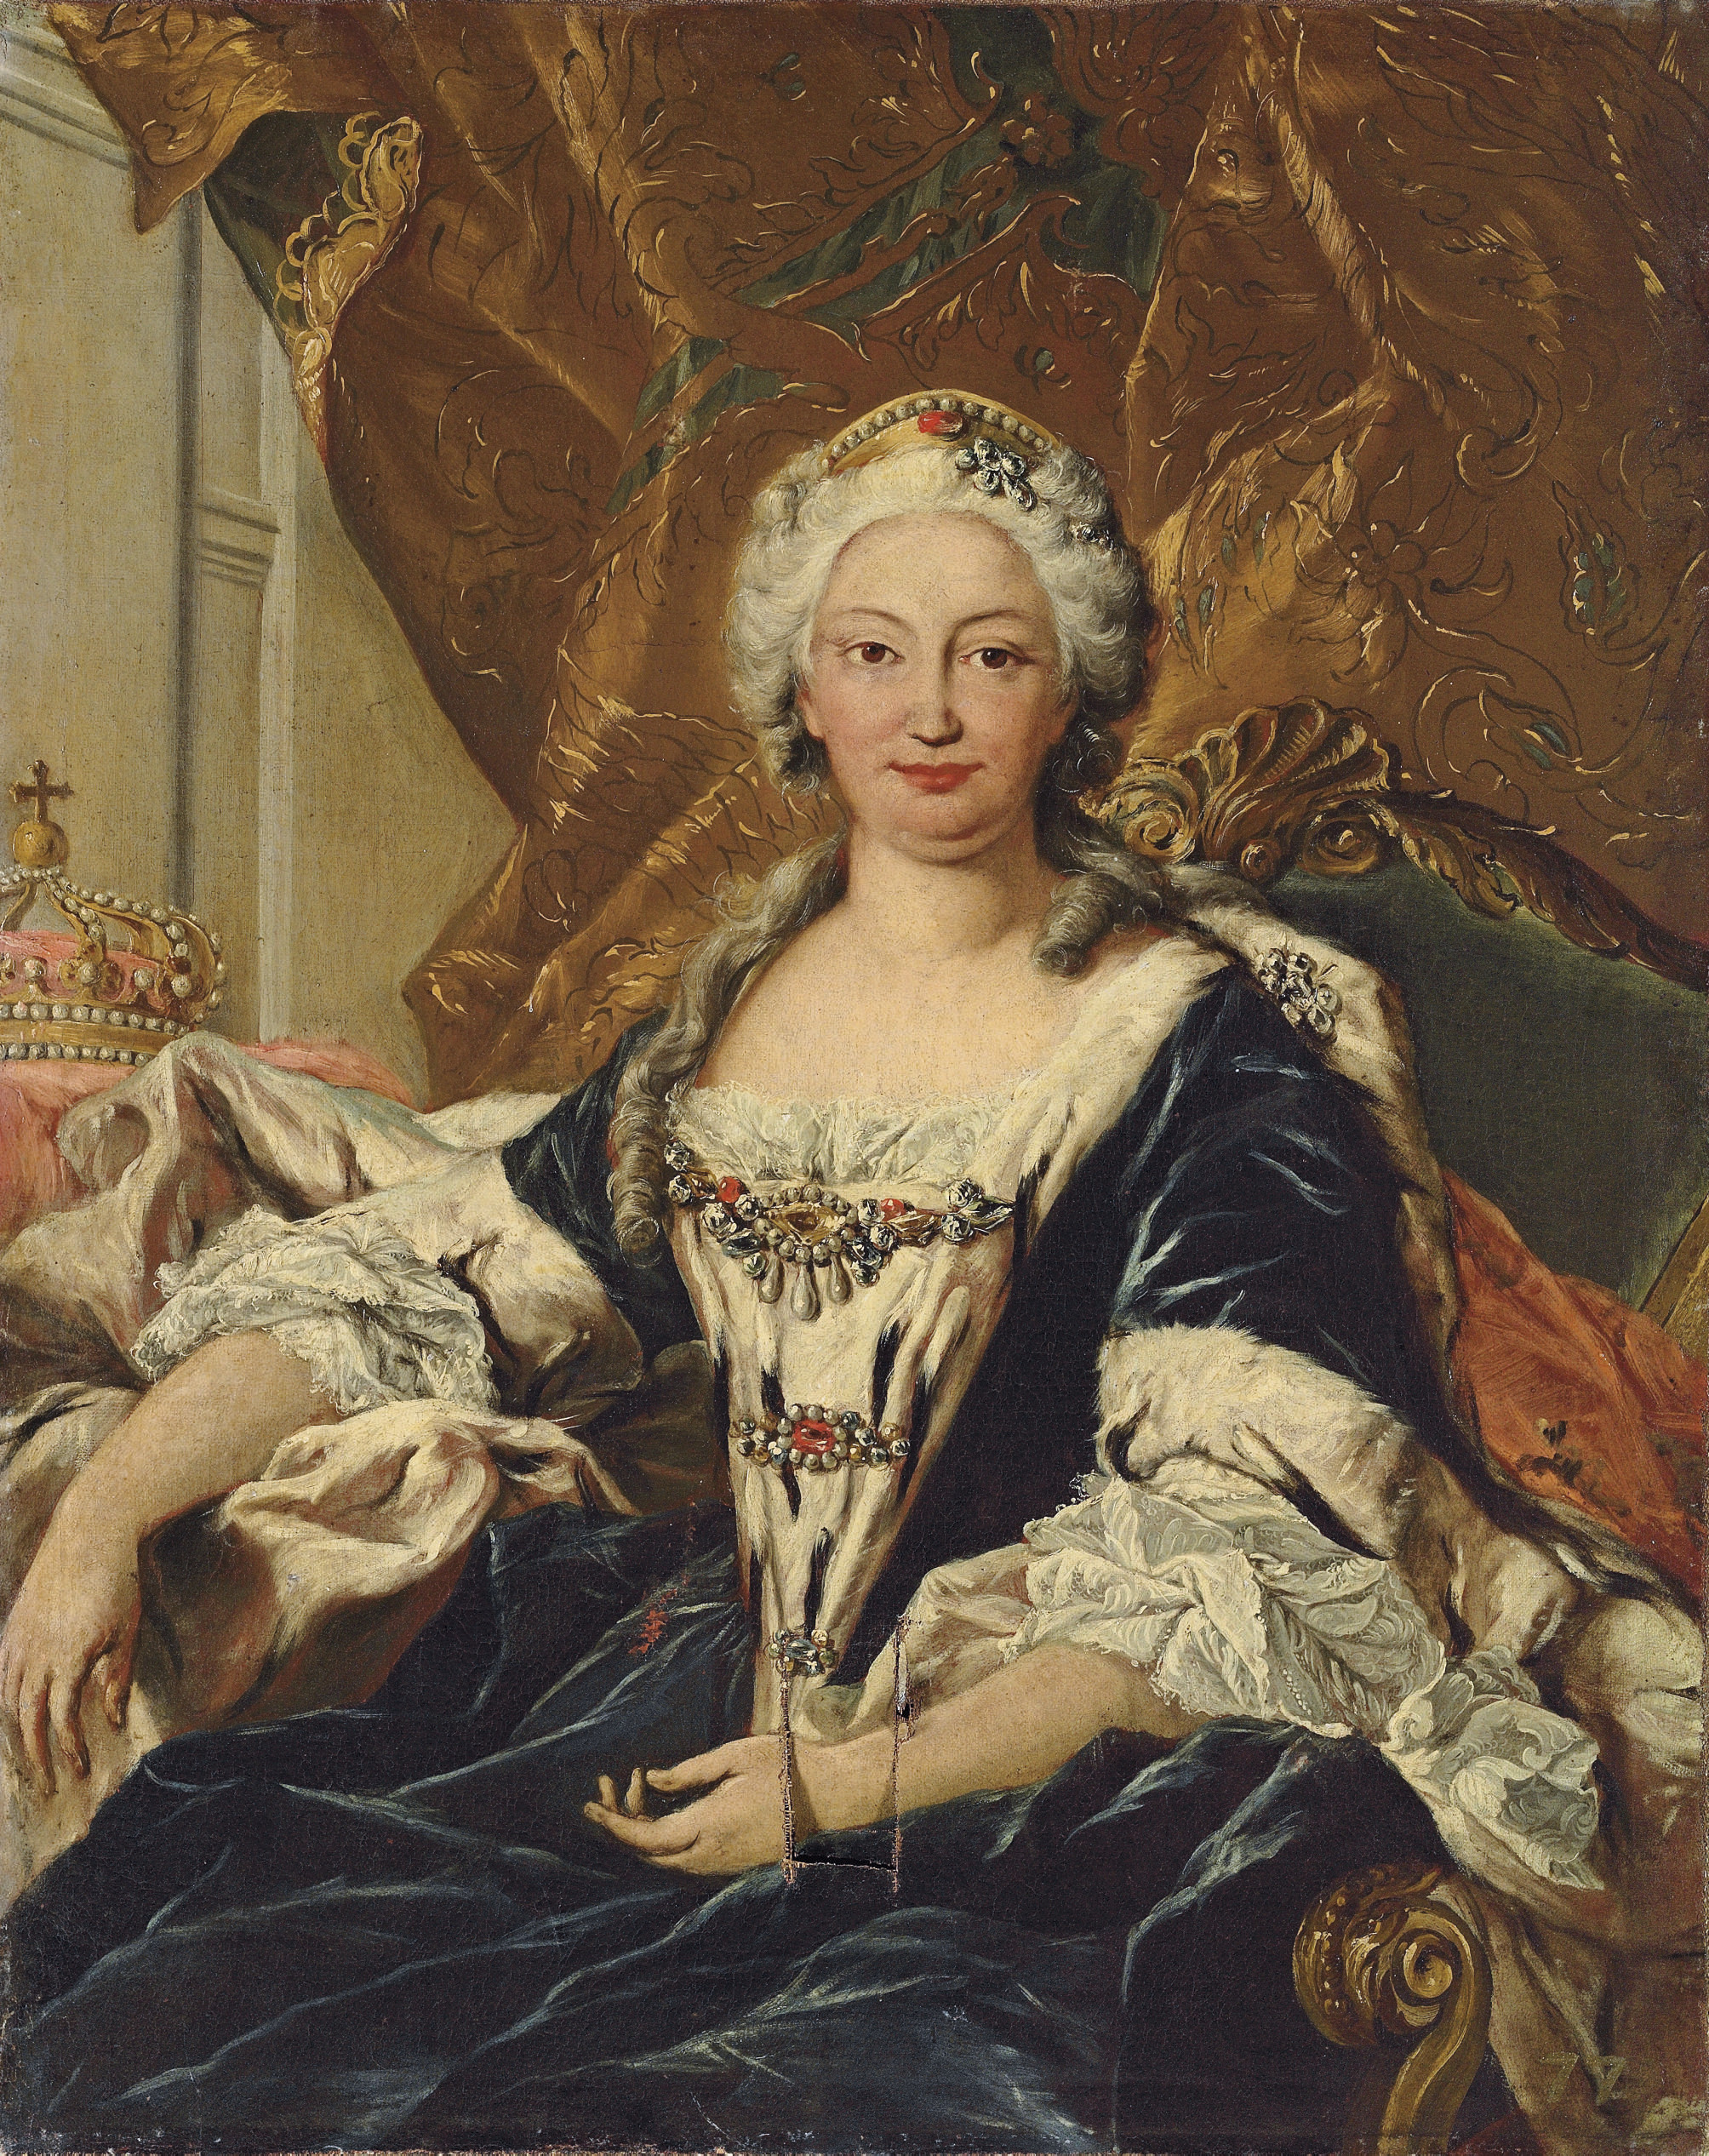 Portrait of Elisabetta Farnese, Queen of Spain, seated three-quarter-length, in an ermine-lined cloak, with a crown beside her, in a draped interior